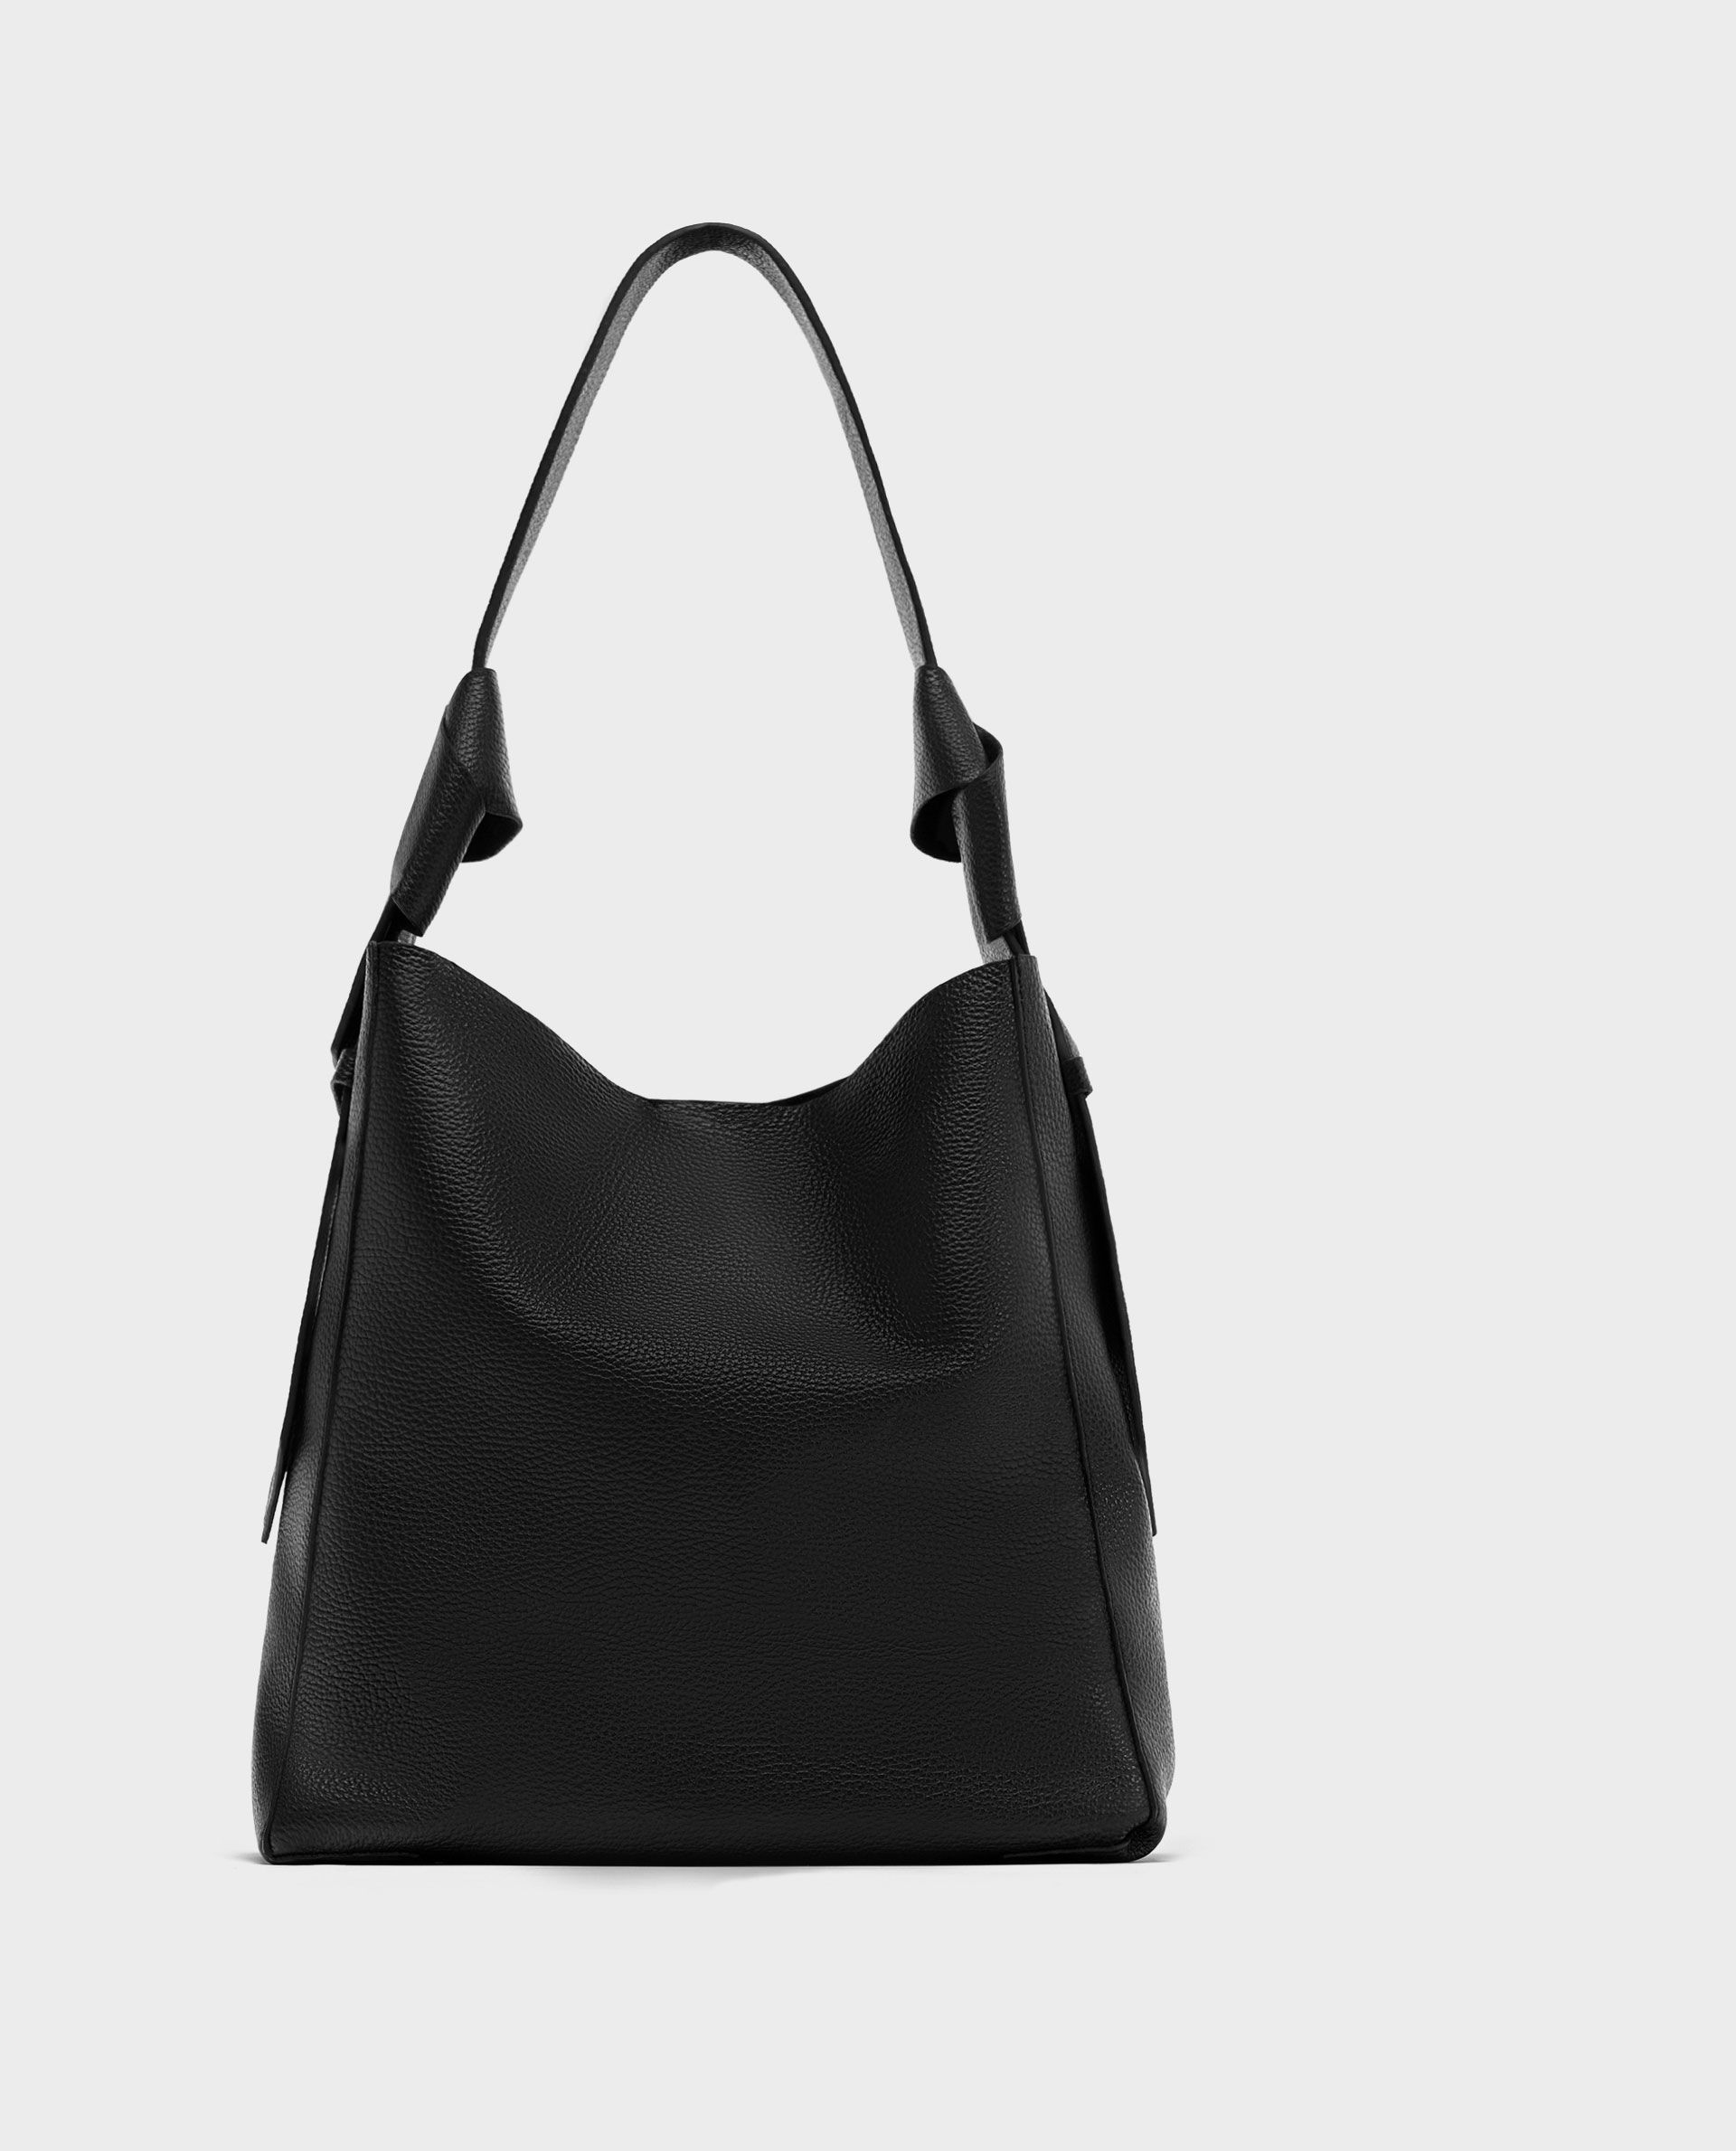 43a02c0a4f Image 11 of LEATHER BUCKET BAG WITH KNOTS from Zara